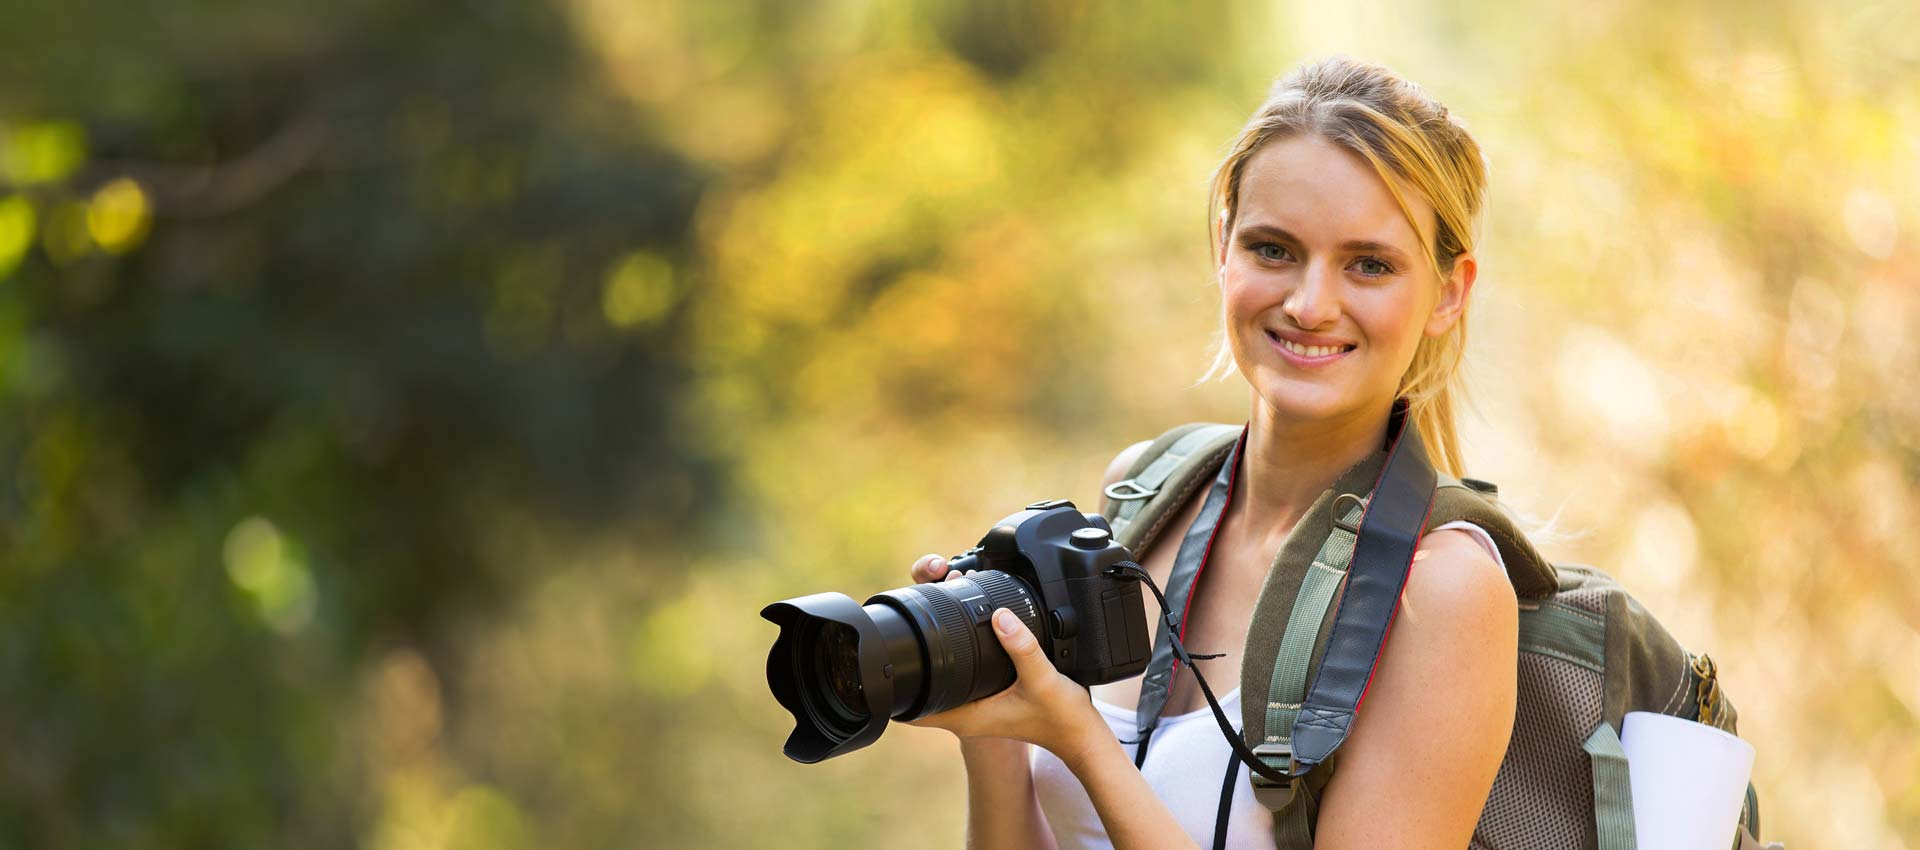 Study photography online.